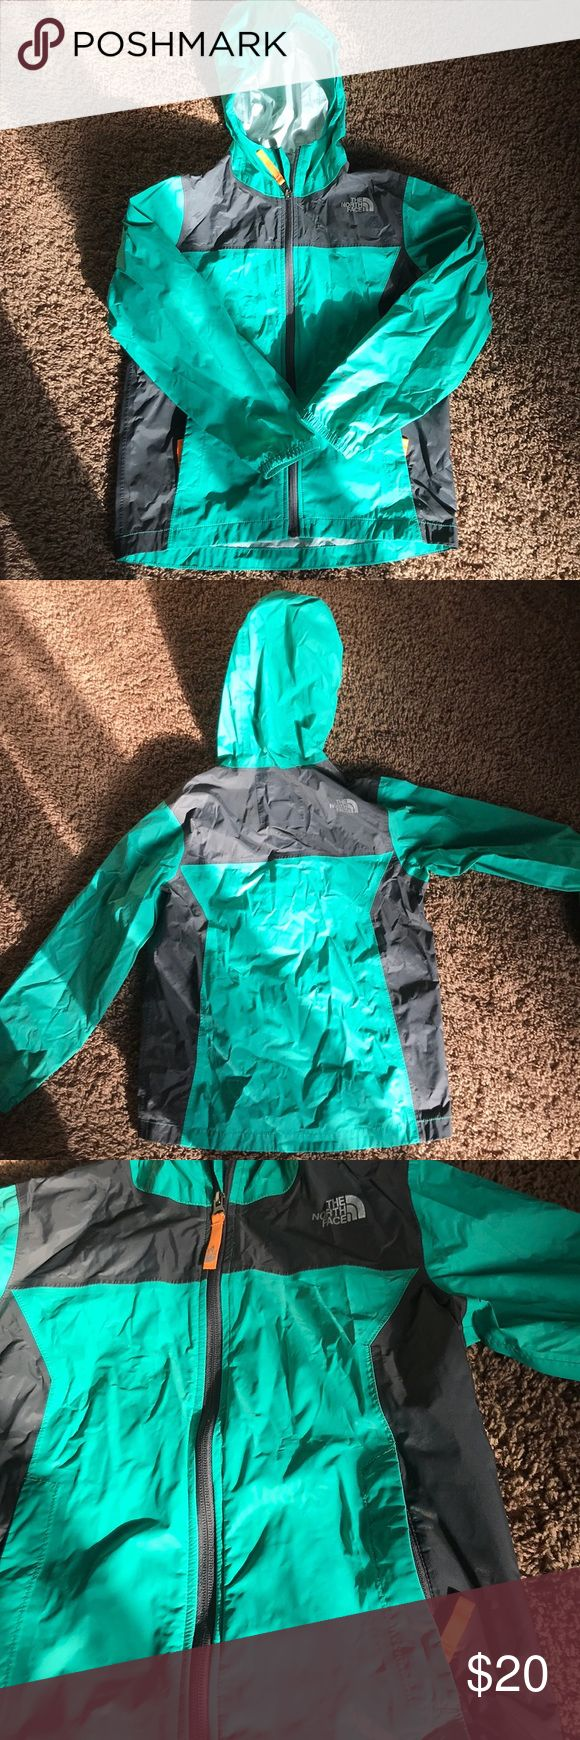 Kids North Face rain jacket size small 7/8 This is a North Face kids rain jacket. Minor signs of use but lamination excellent. Ready for fun on a new kid 😊 The color would be suitable for a boy or girl. The North Face Jackets & Coats Raincoats